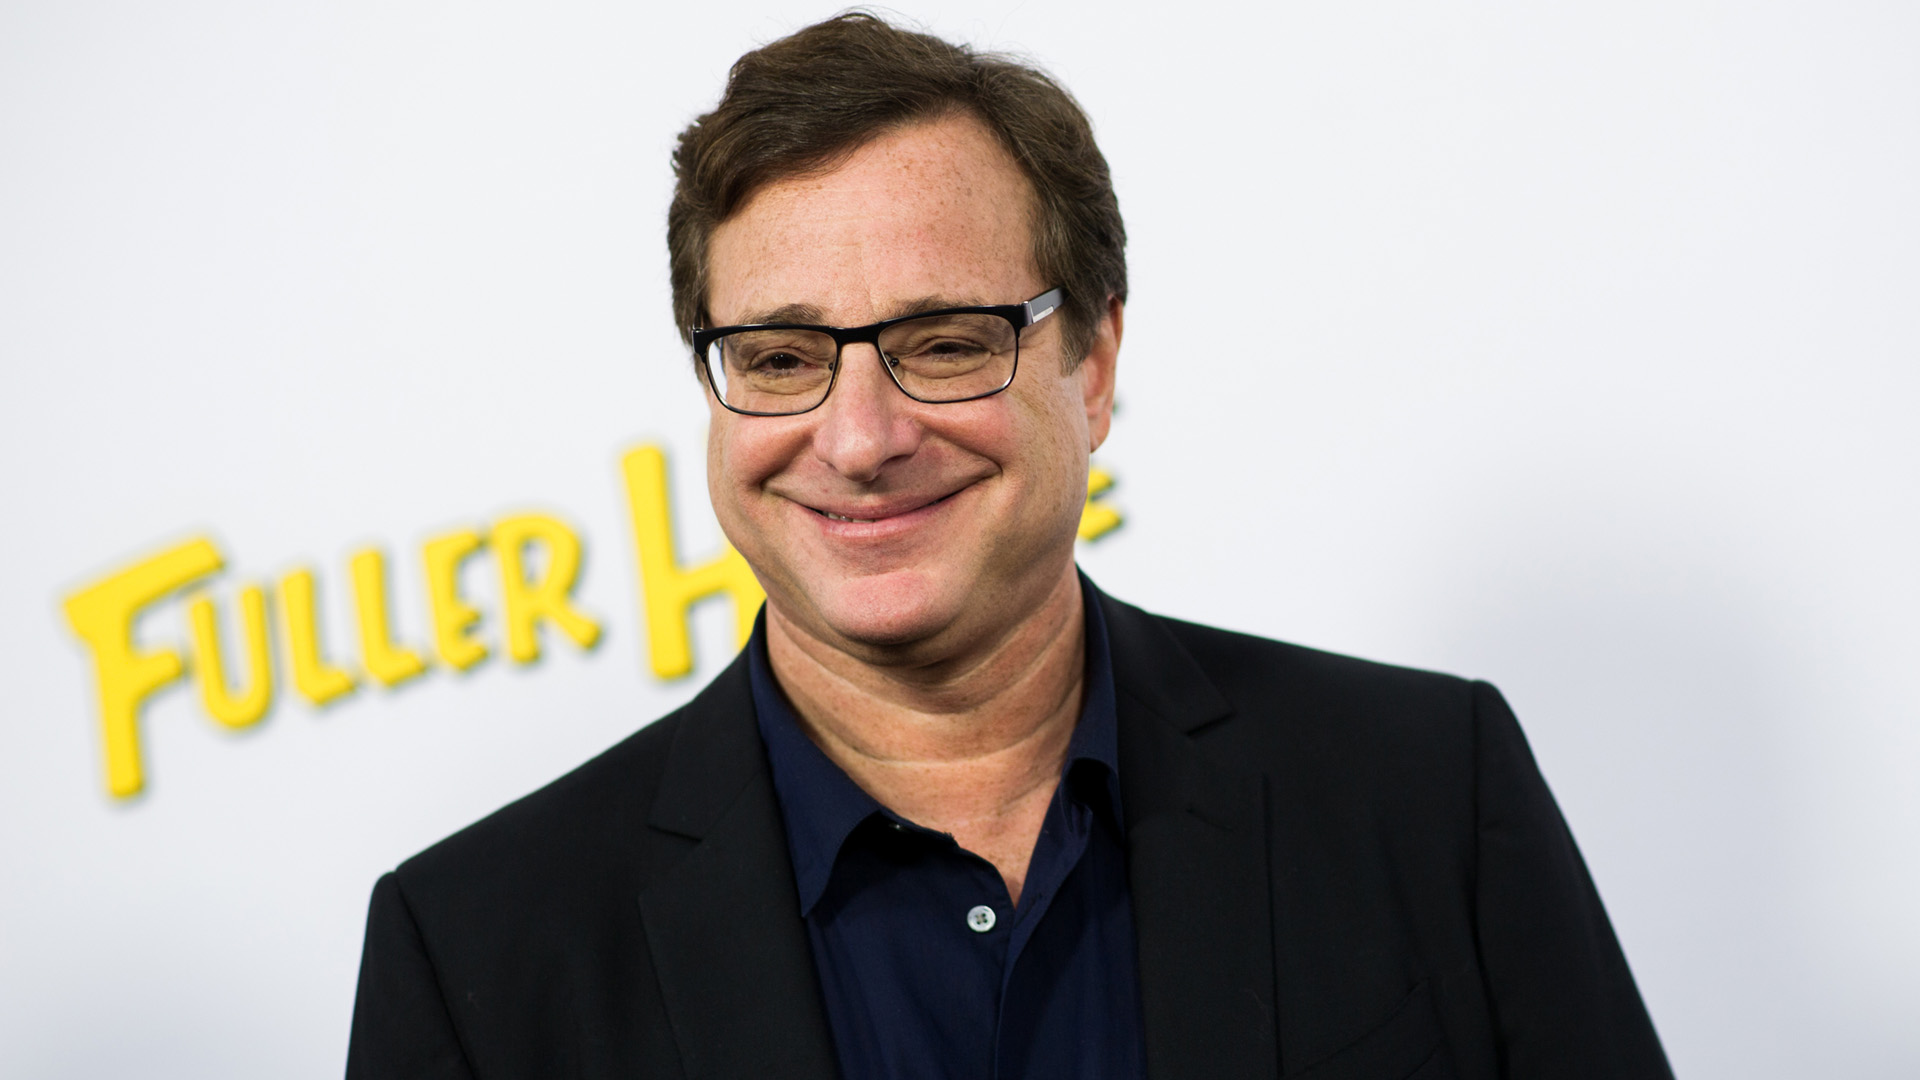 """Actor Bob Saget attends the premiere of Netflix's """"Fuller House"""" at The Grove on Feb. 16, 2016. (Credit: Emma McIntyre/Getty Images)"""